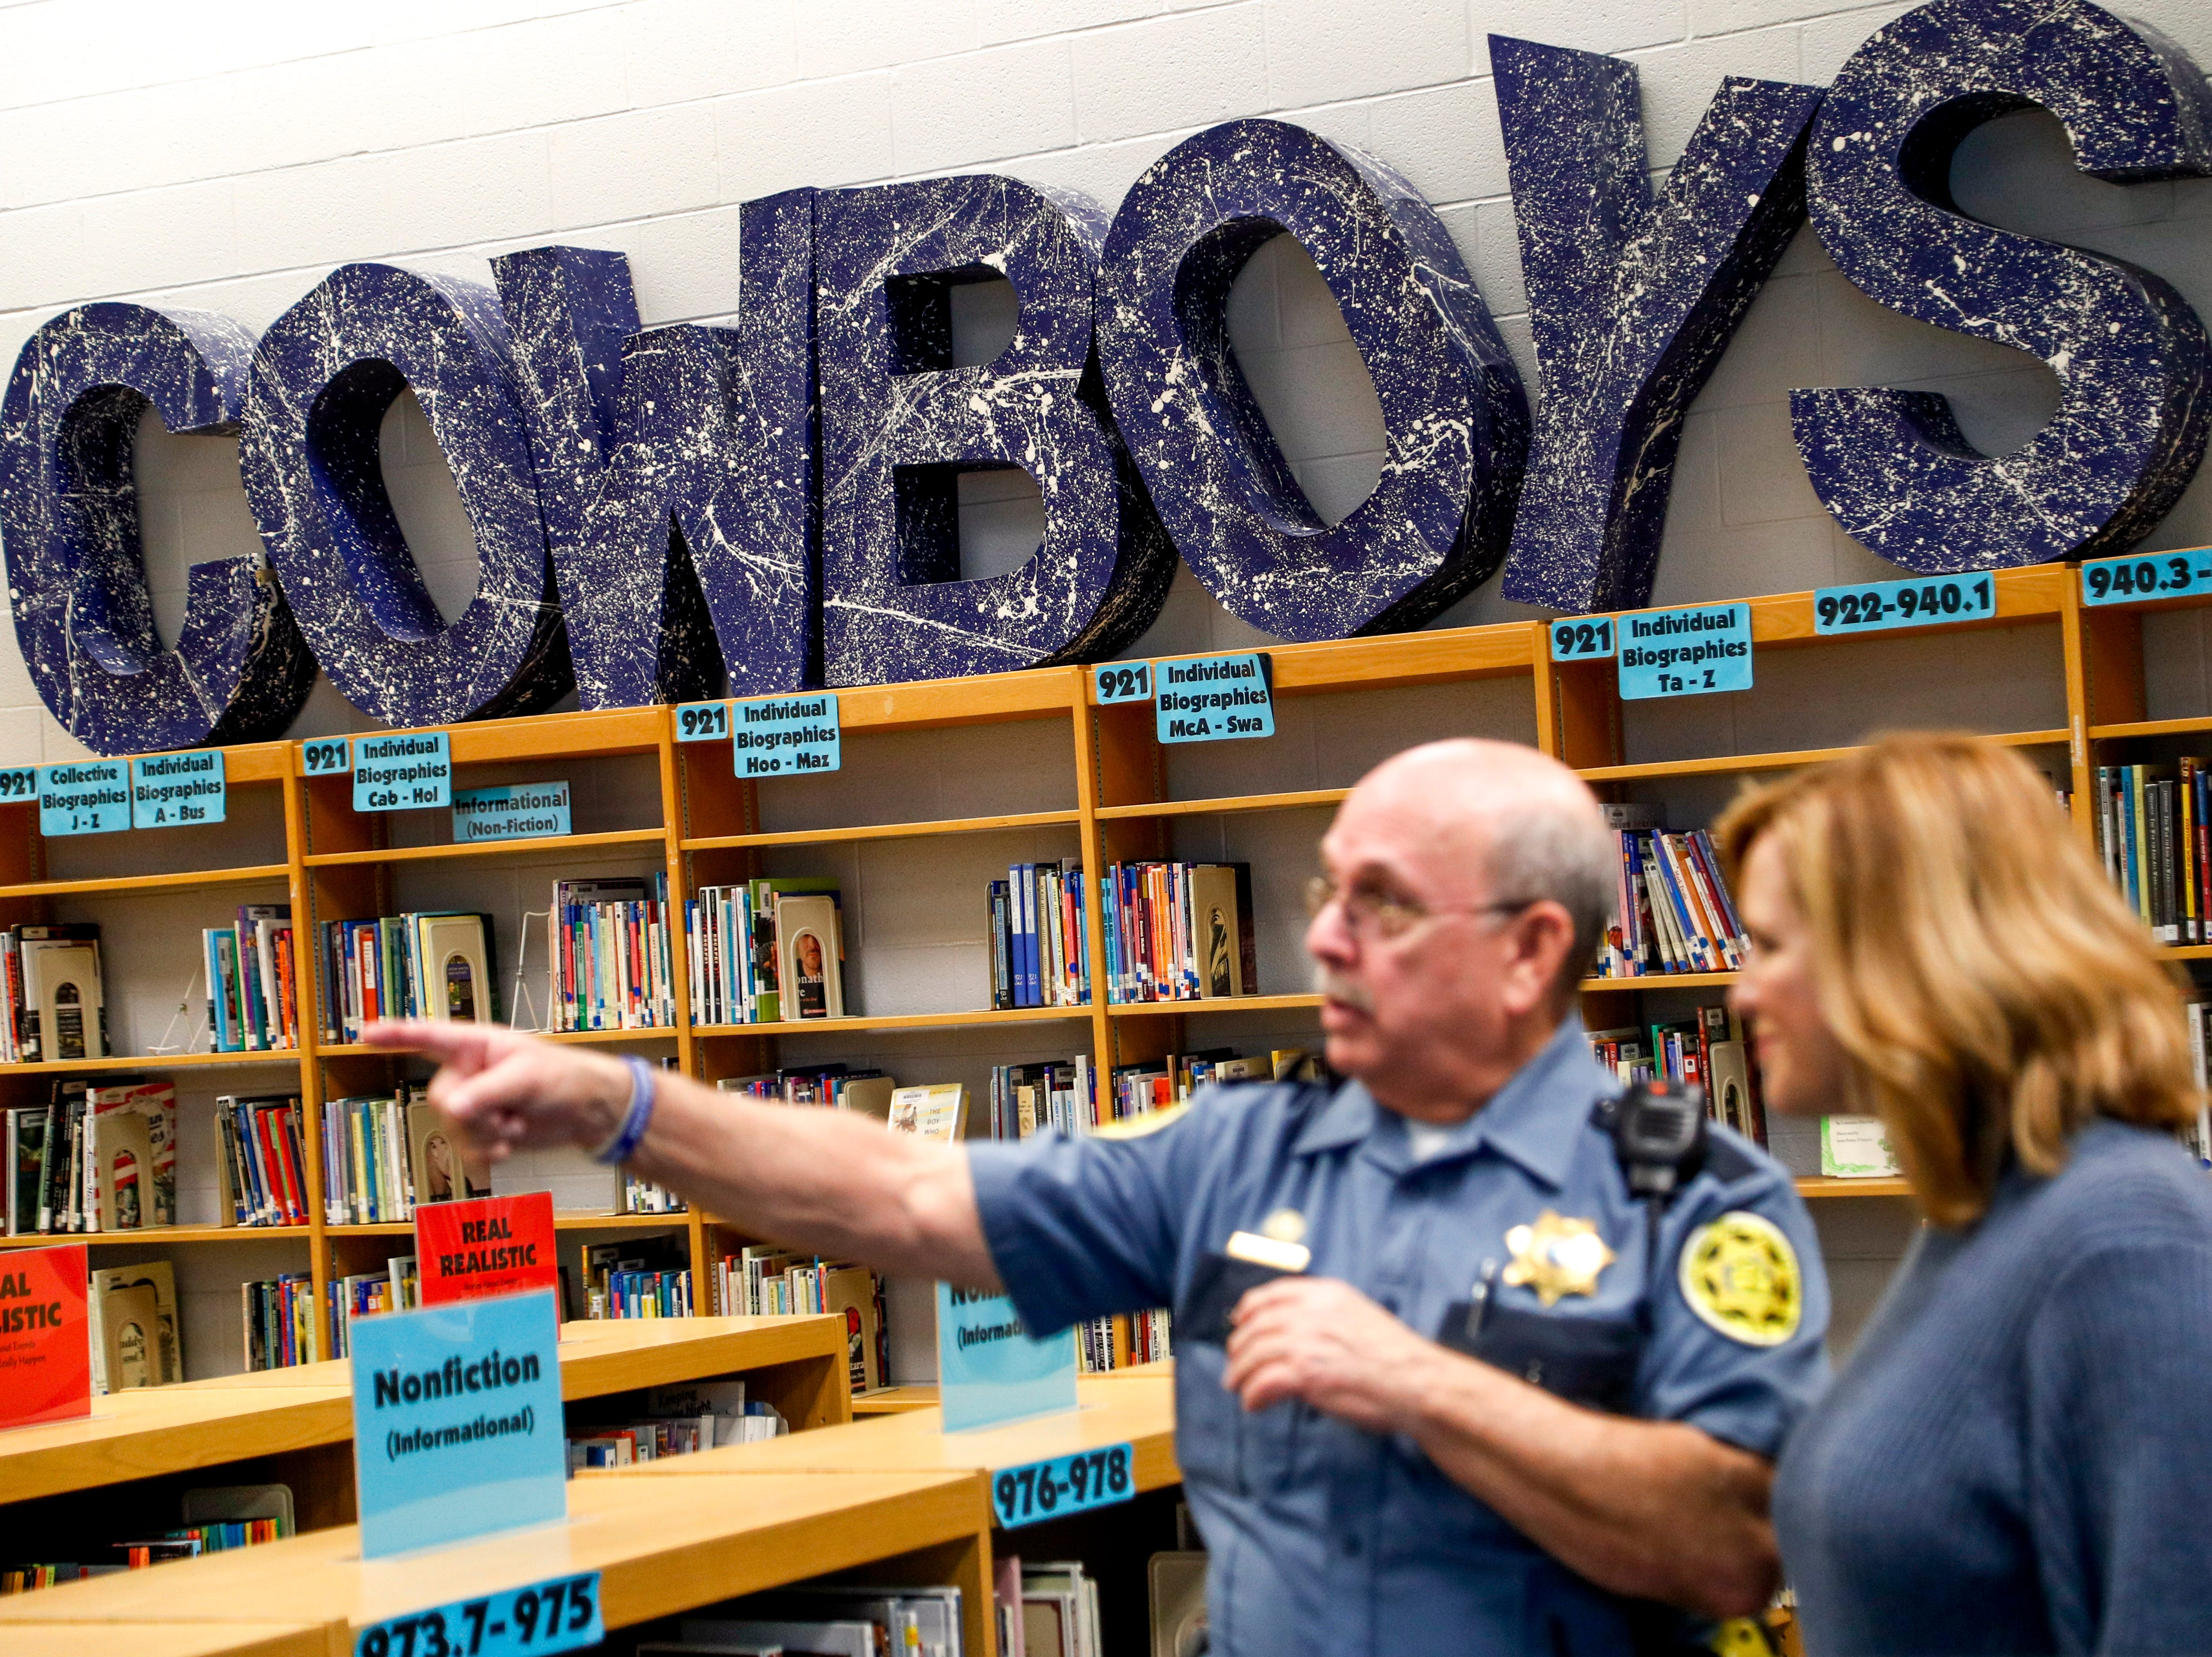 SRO Richard Brown speaks with principal Lisa Baker in the school library in front of shelves of books and a large letters for the school mascot at Richview Middle School in Clarksville, Tenn., on Friday, March 15, 2019.